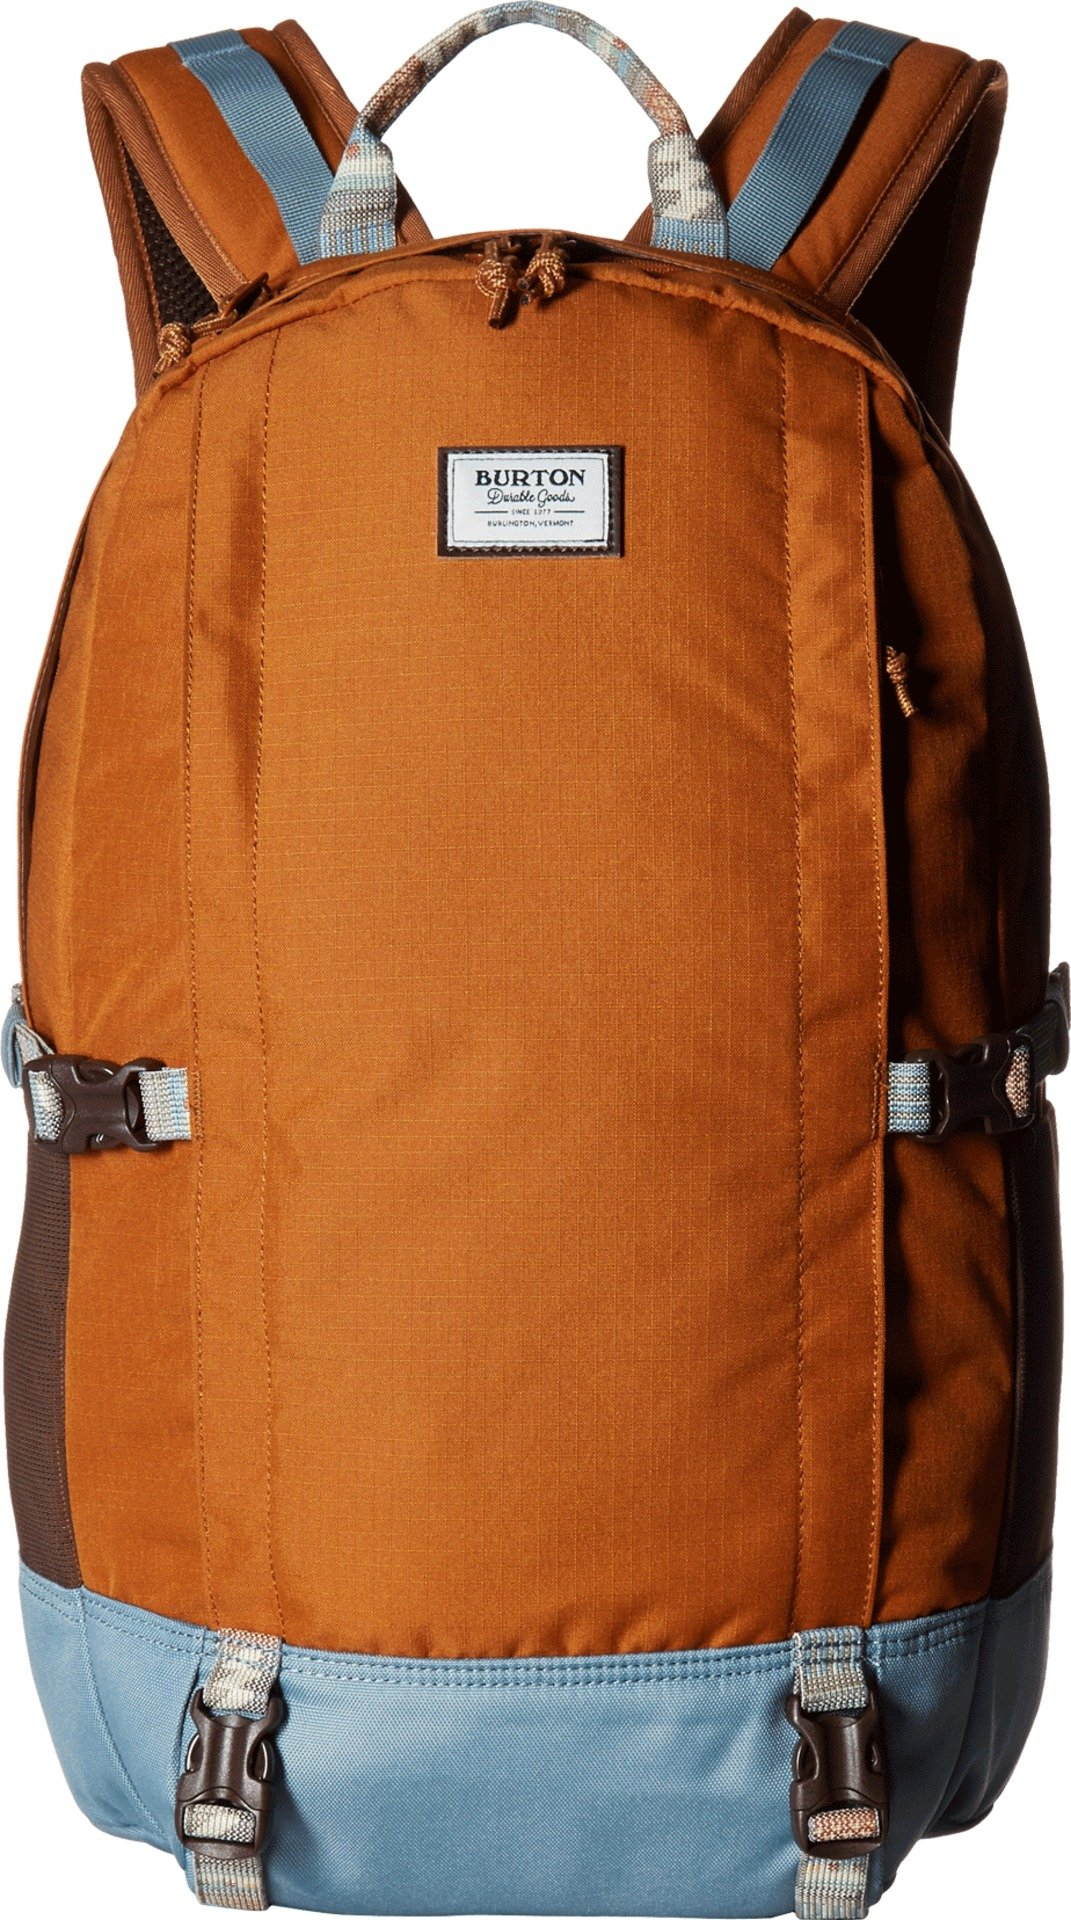 Burton Sleyton Backpack, True Penny Ripstop, One Size